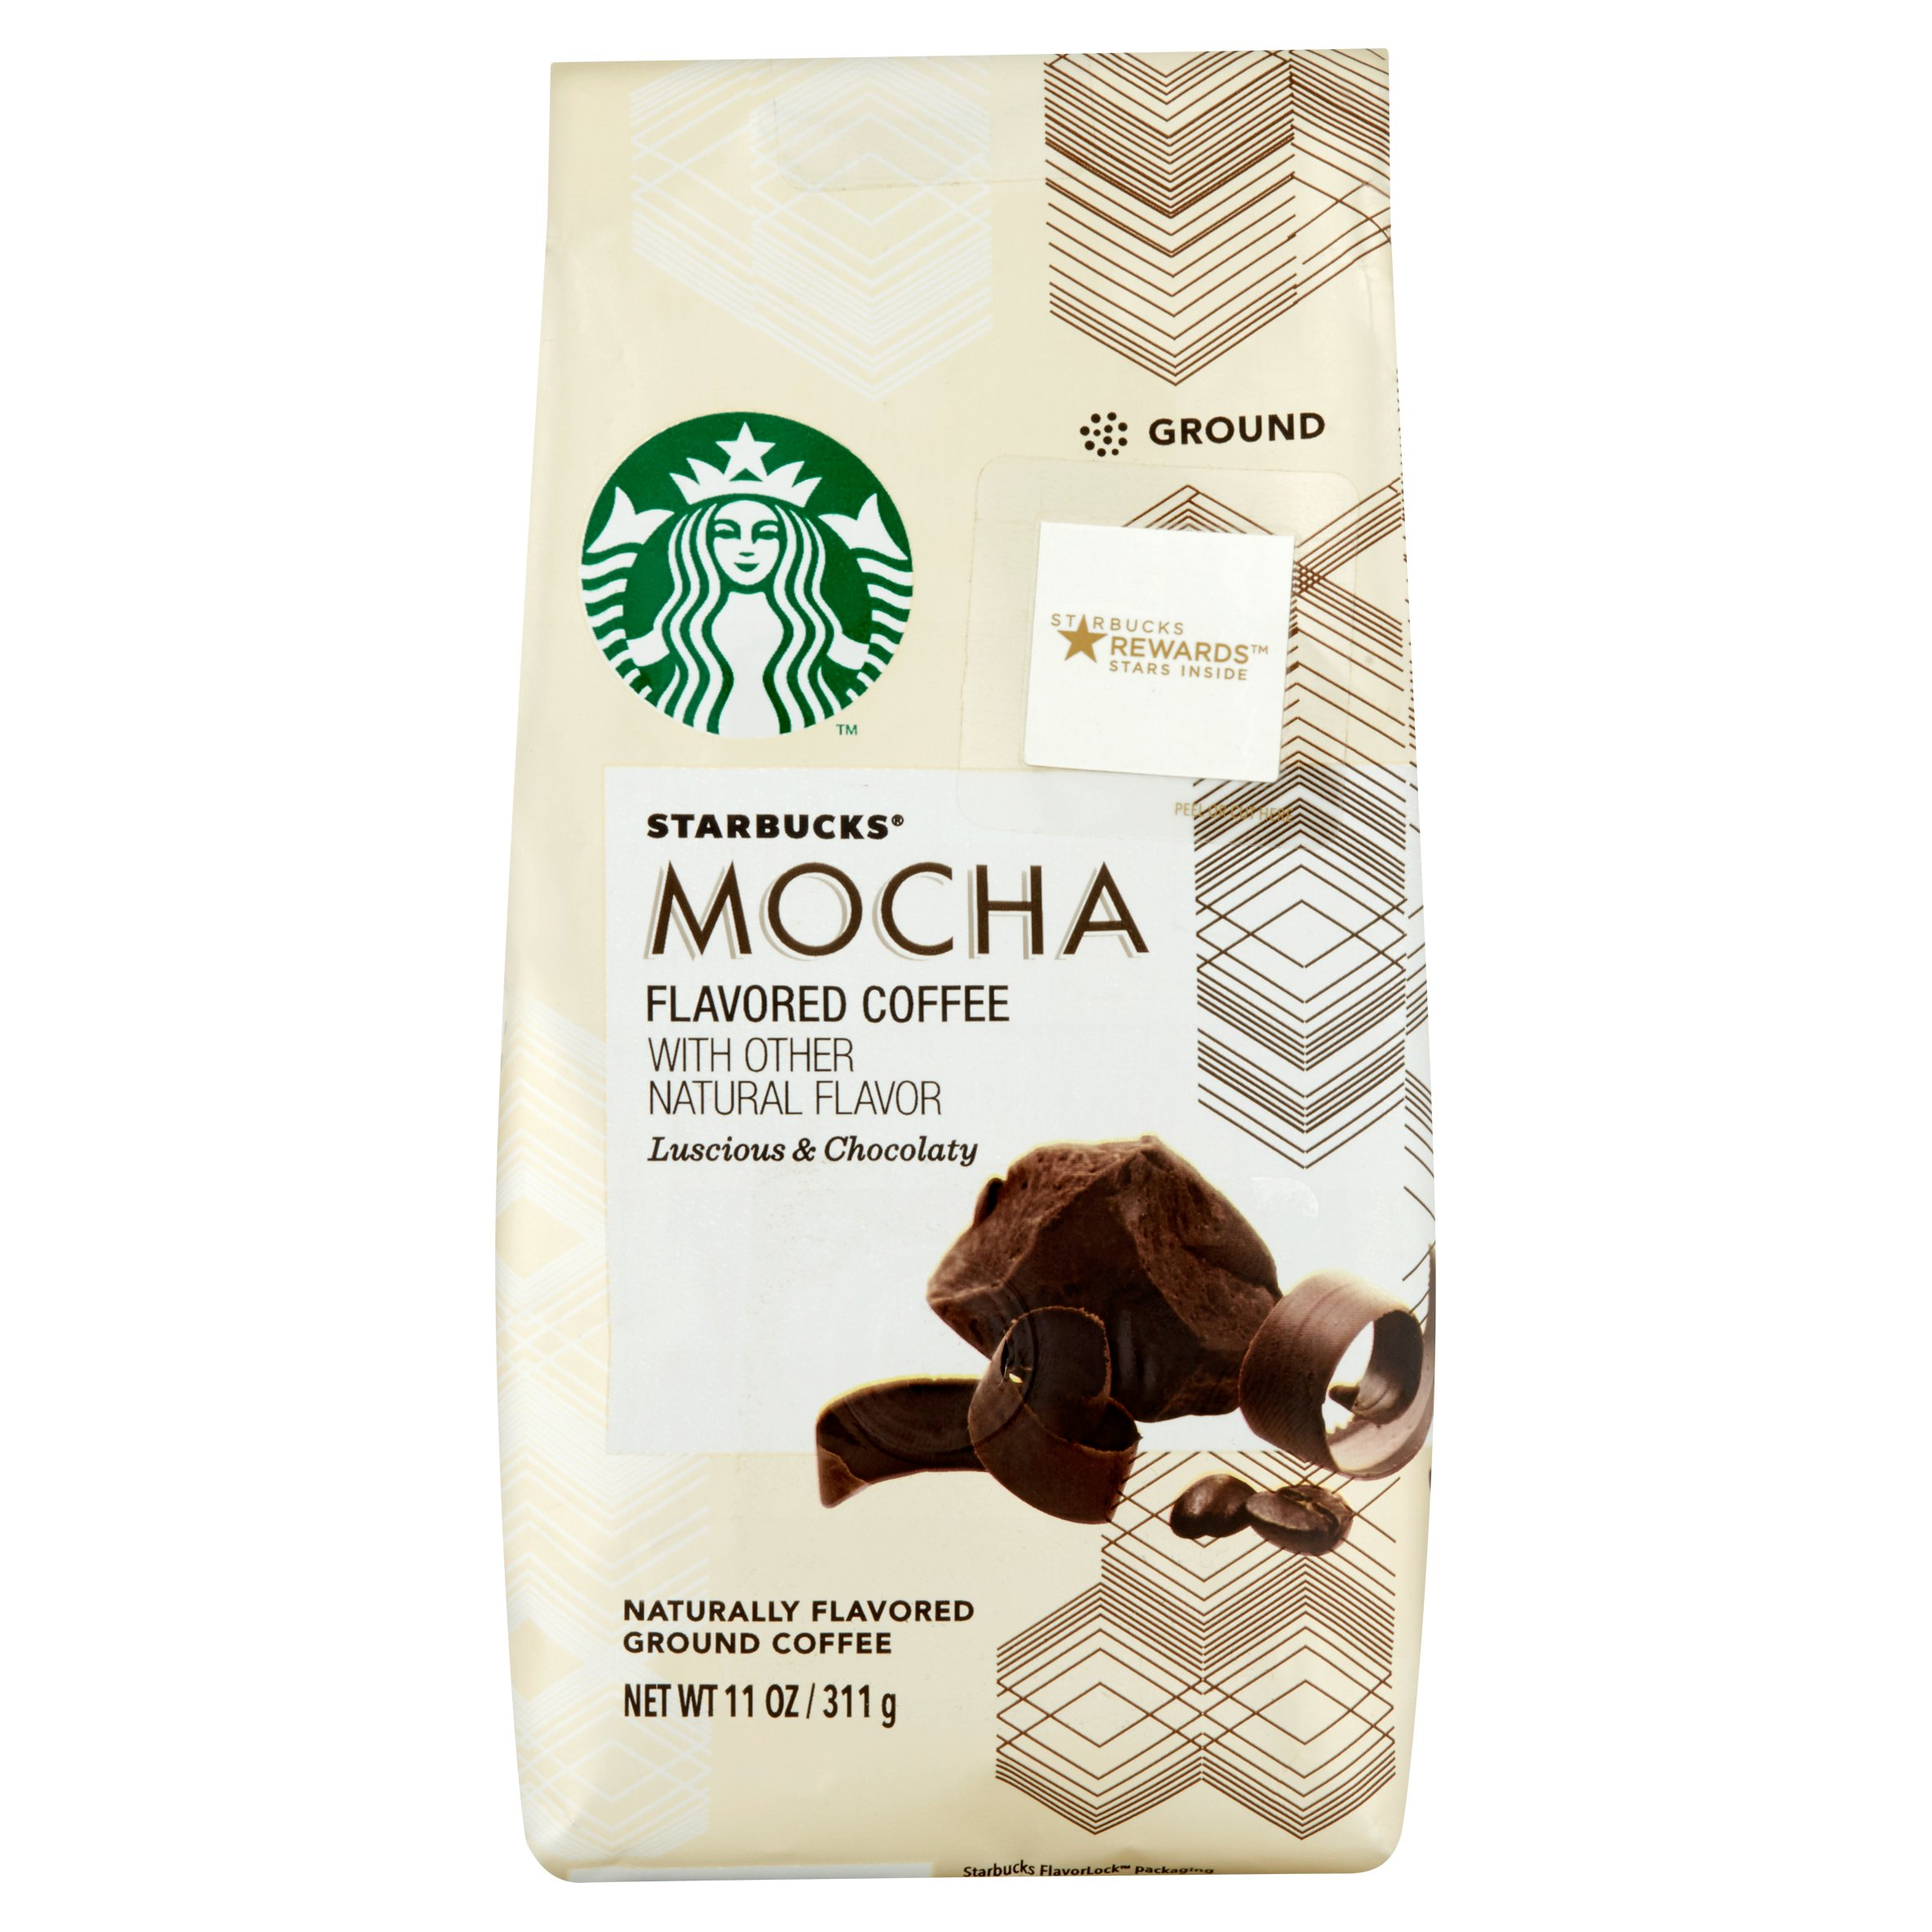 Starbucks Mocha Ground Naturally Flavored Coffee 11oz